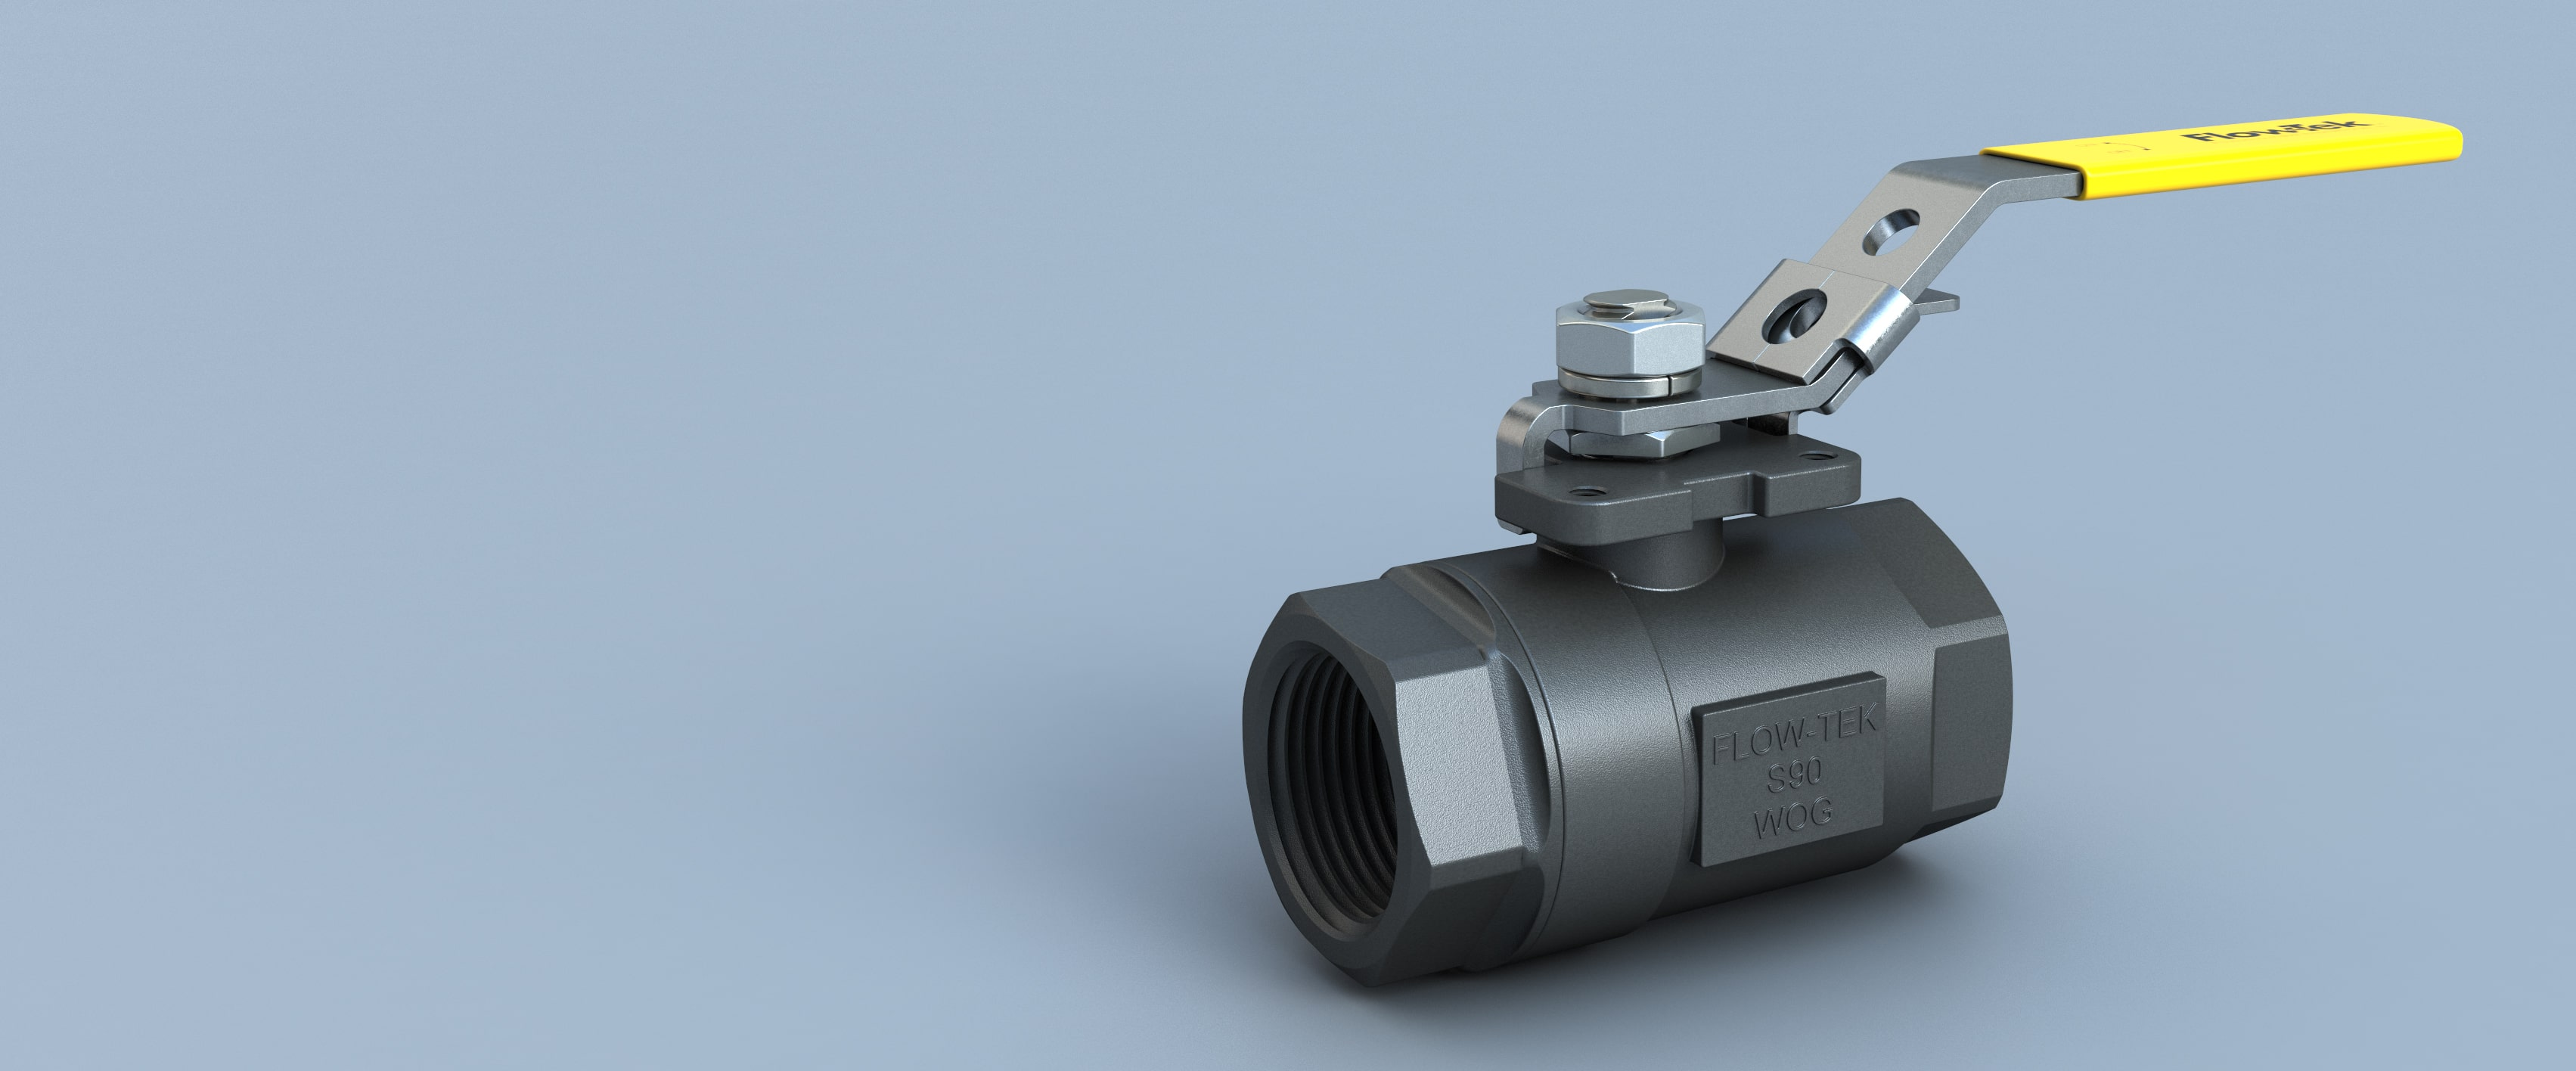 Threaded Ball Valve S70-S90 Flow-tek Bray